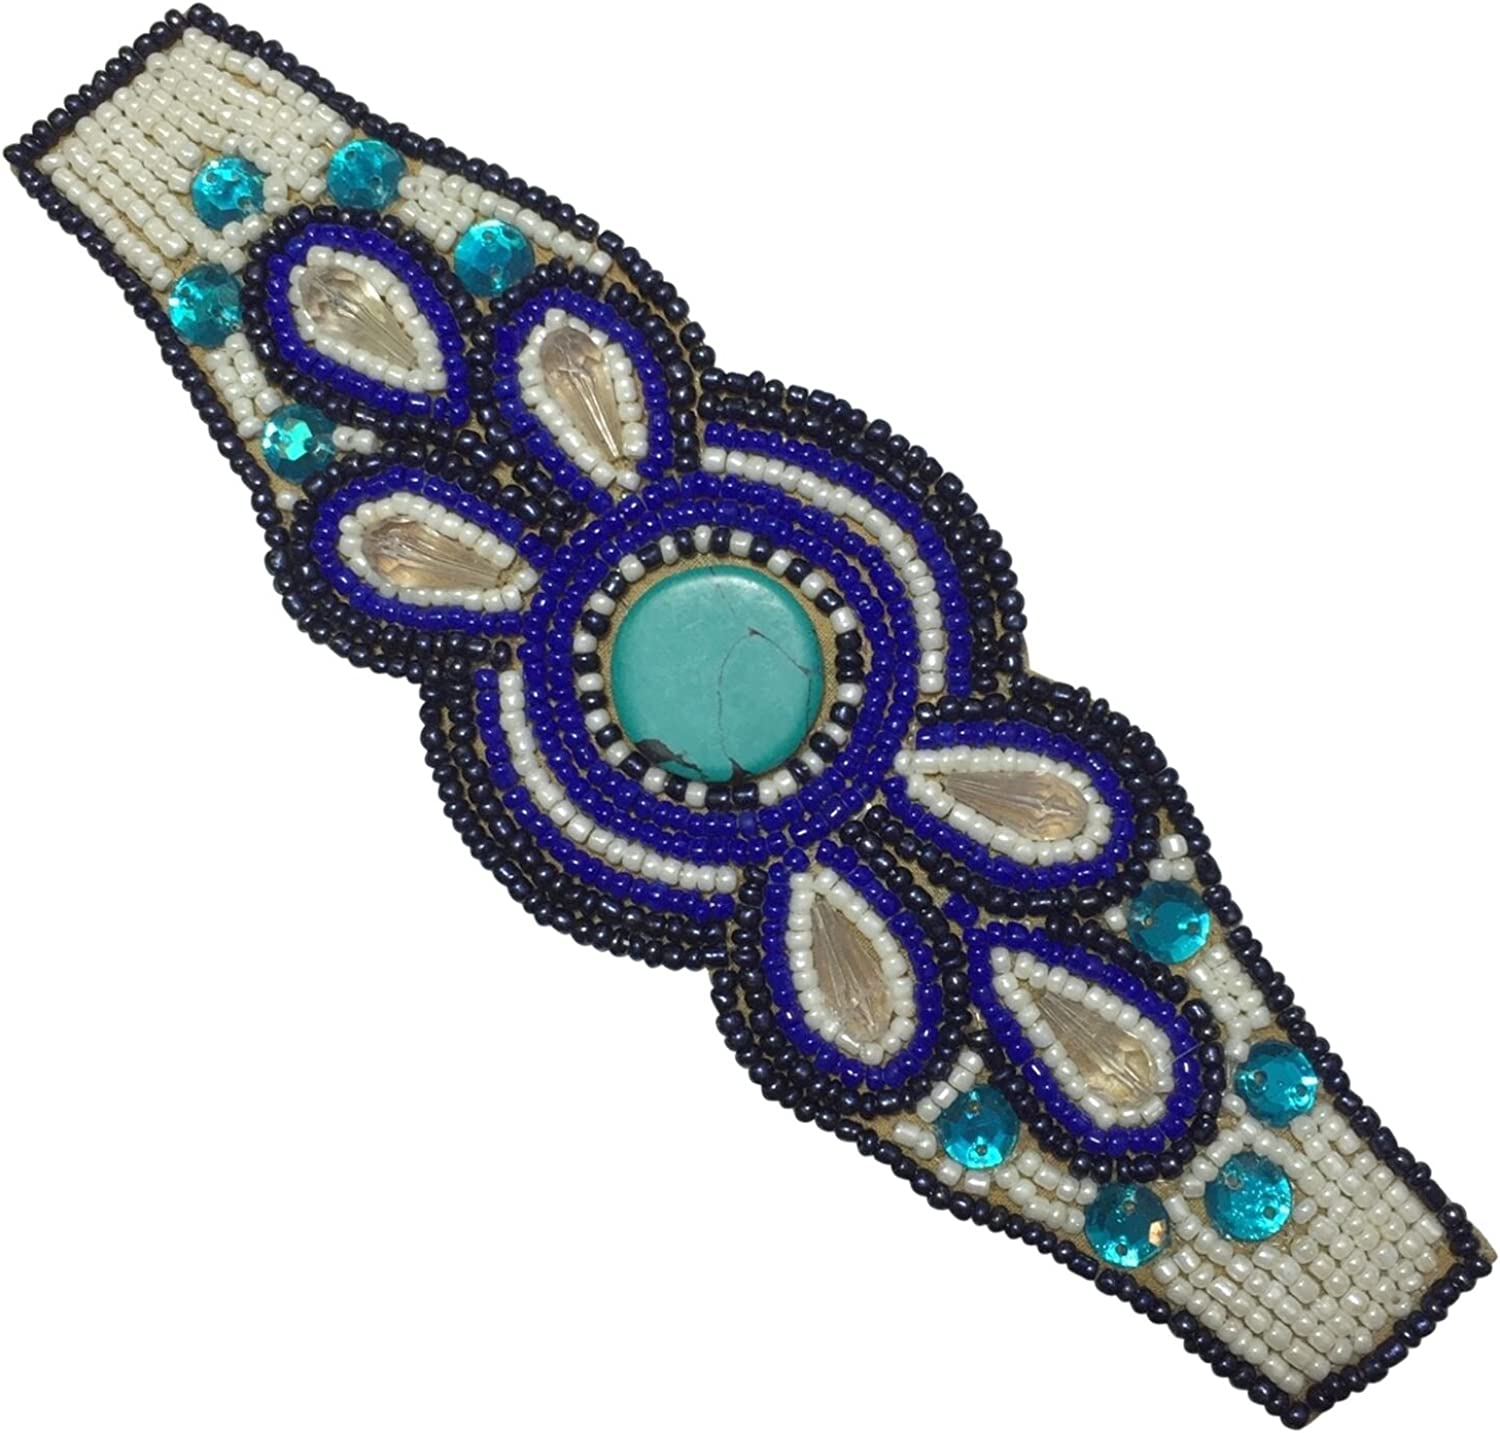 Gypsy Jewels Bohemian Beaded Multi Color Statement Wired Adjustable Cuff Bracelet